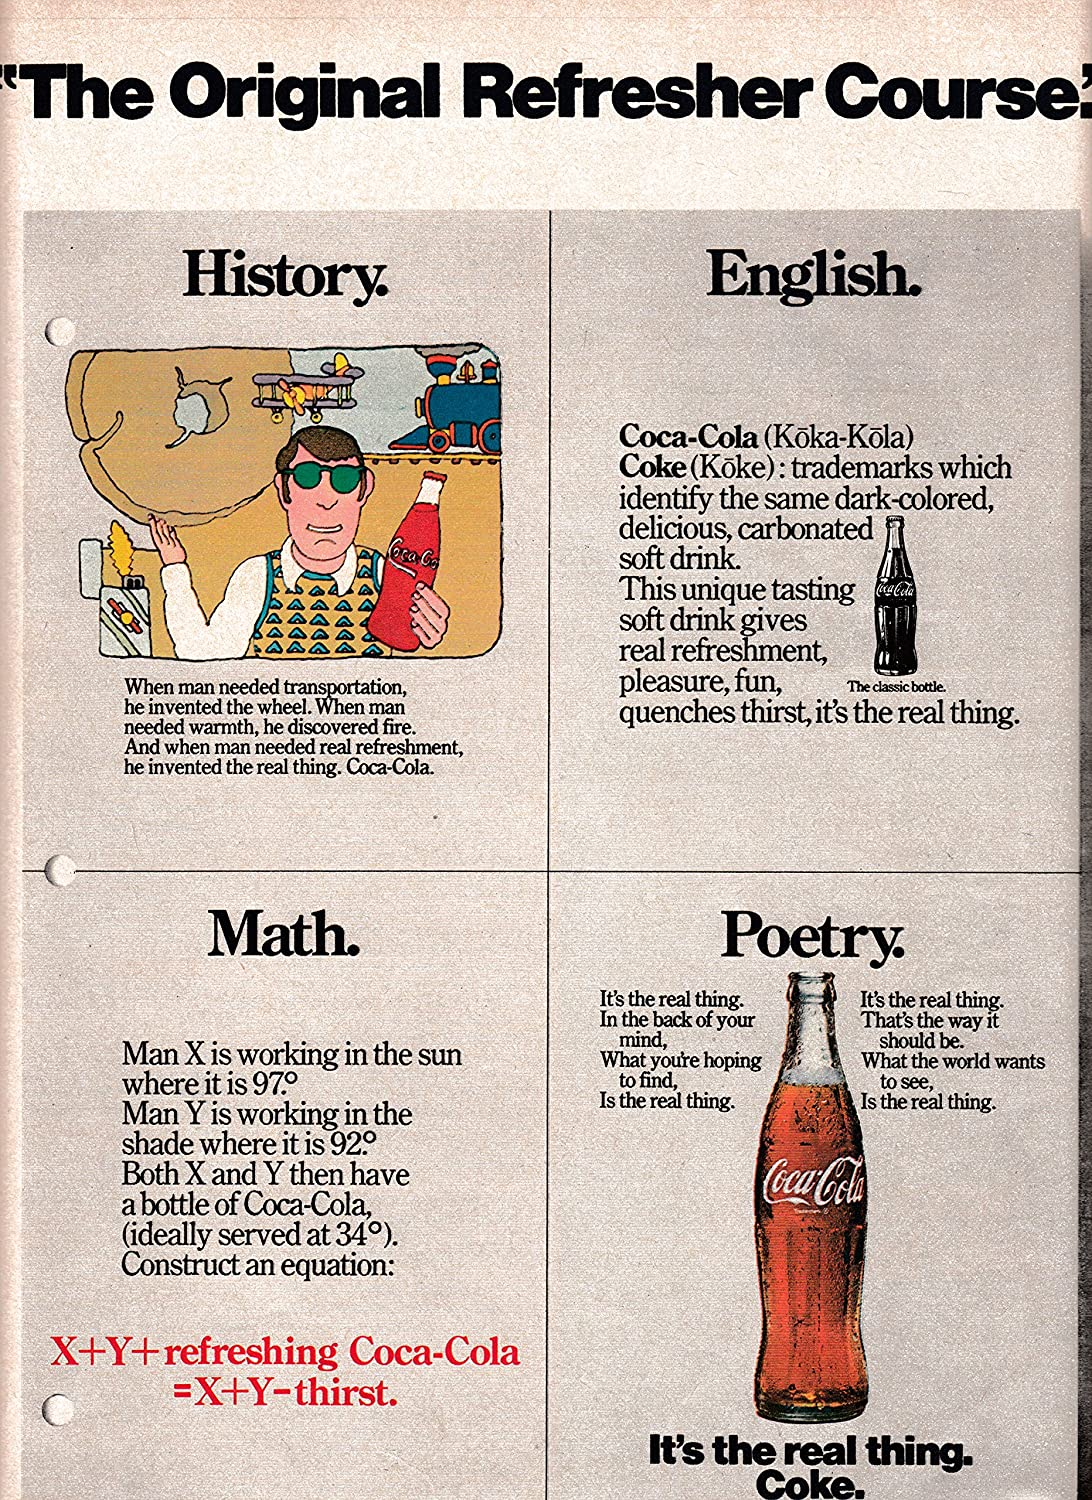 Amazon.com : 1973 Coke Coca-Cola Refresher Course-History-English ...